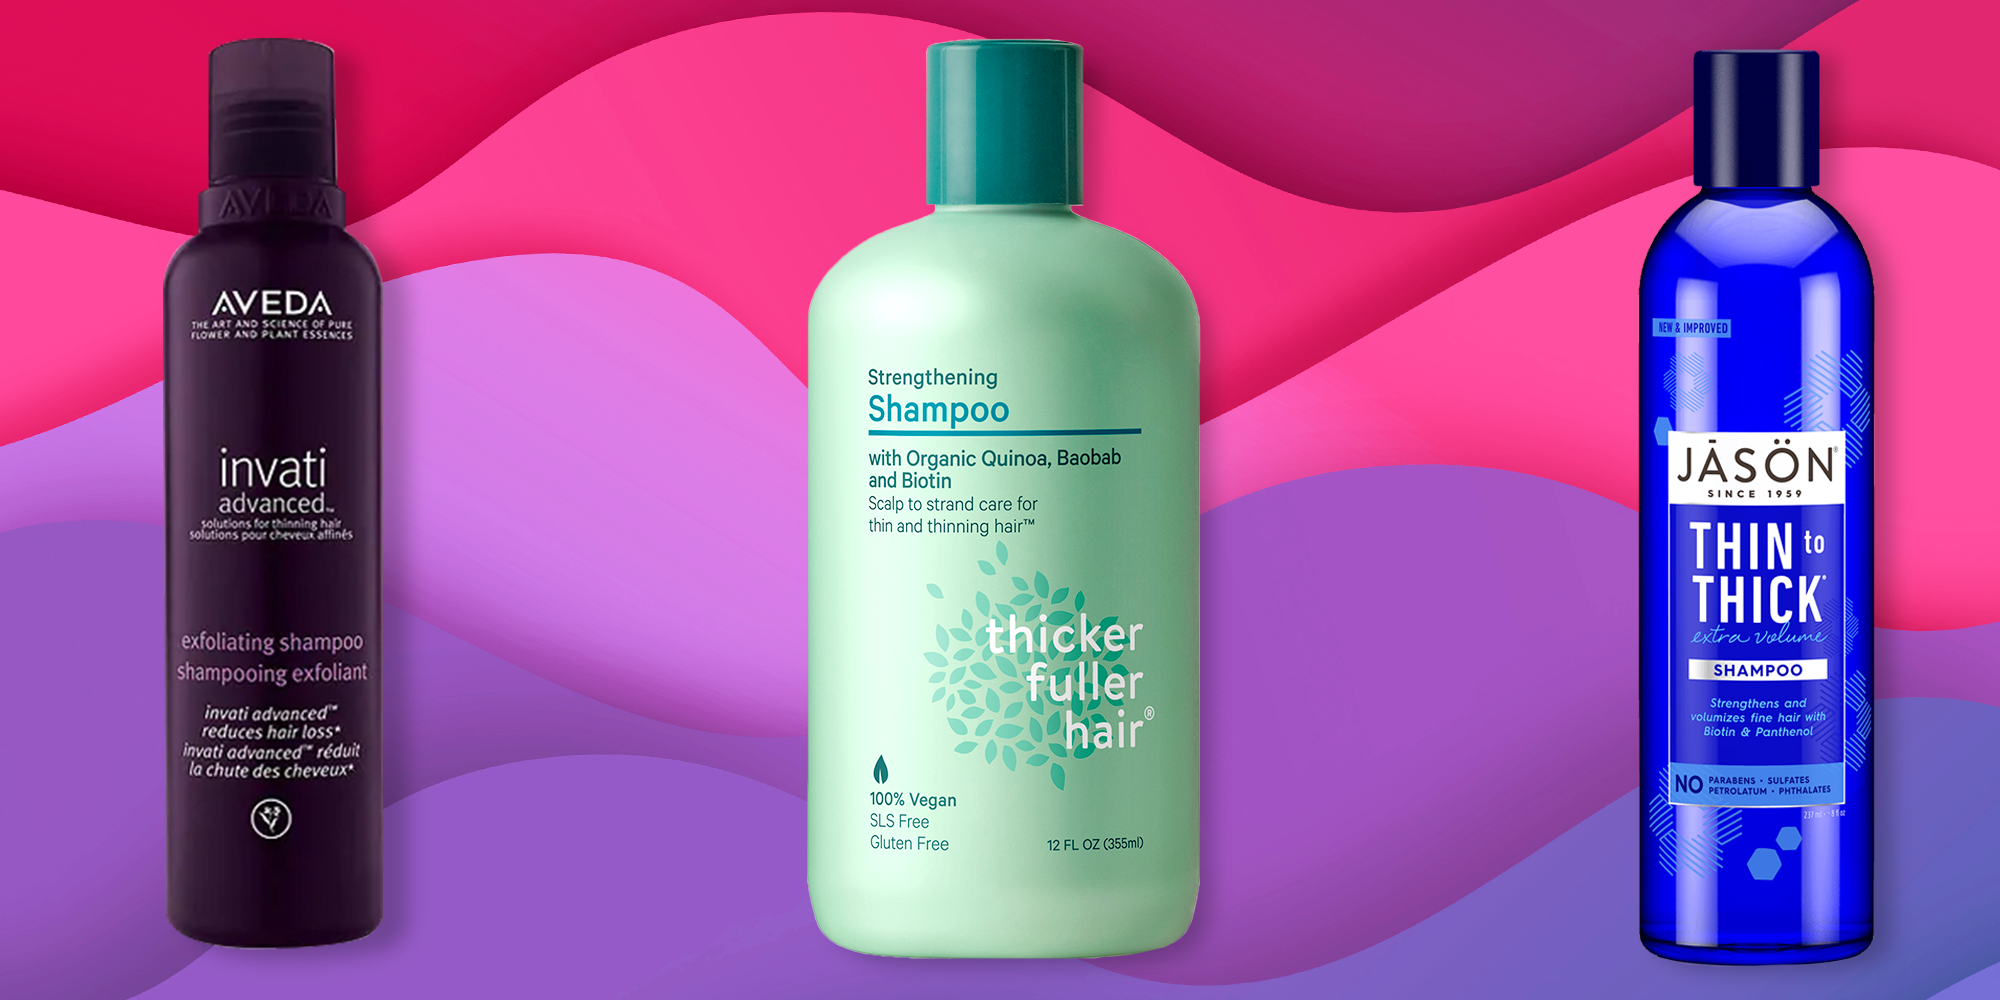 35 Best Shampoos For Thinning Hair 3535 - Shampoo For Hair Loss